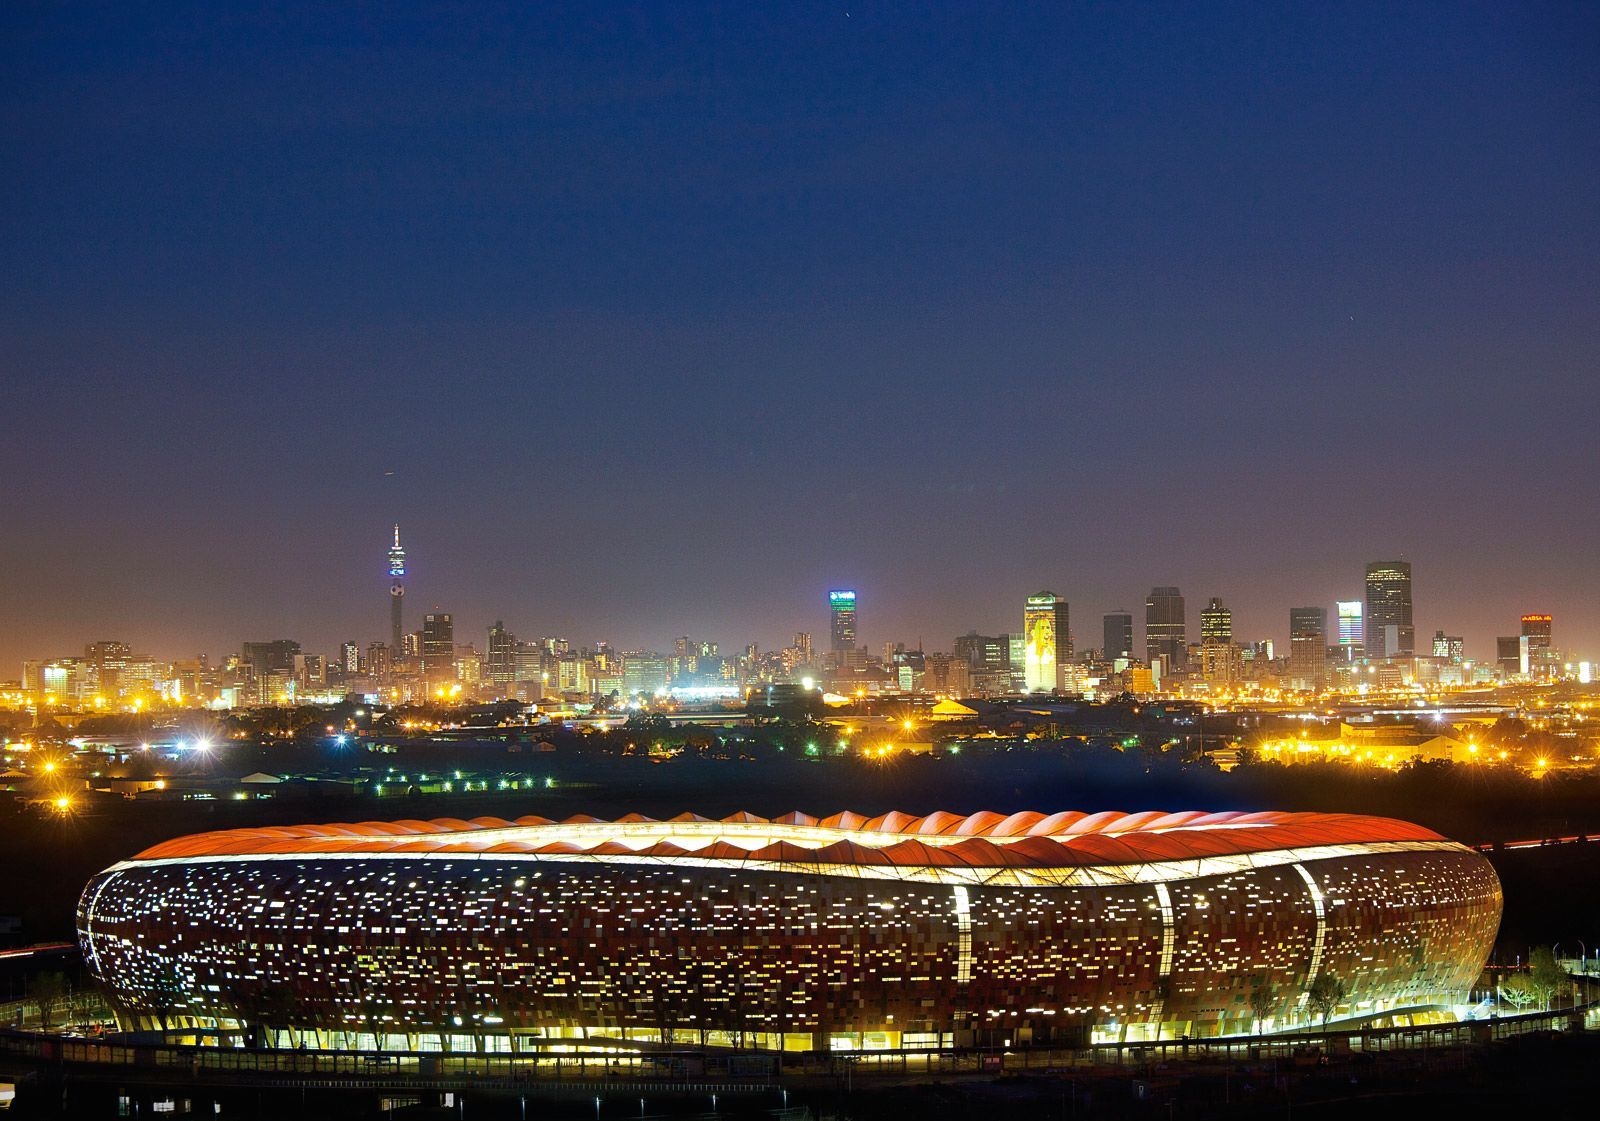 The City of Lights - #Johannesburg -the biggest football stadium in the country which held the #2010FifaWorldCupfinal